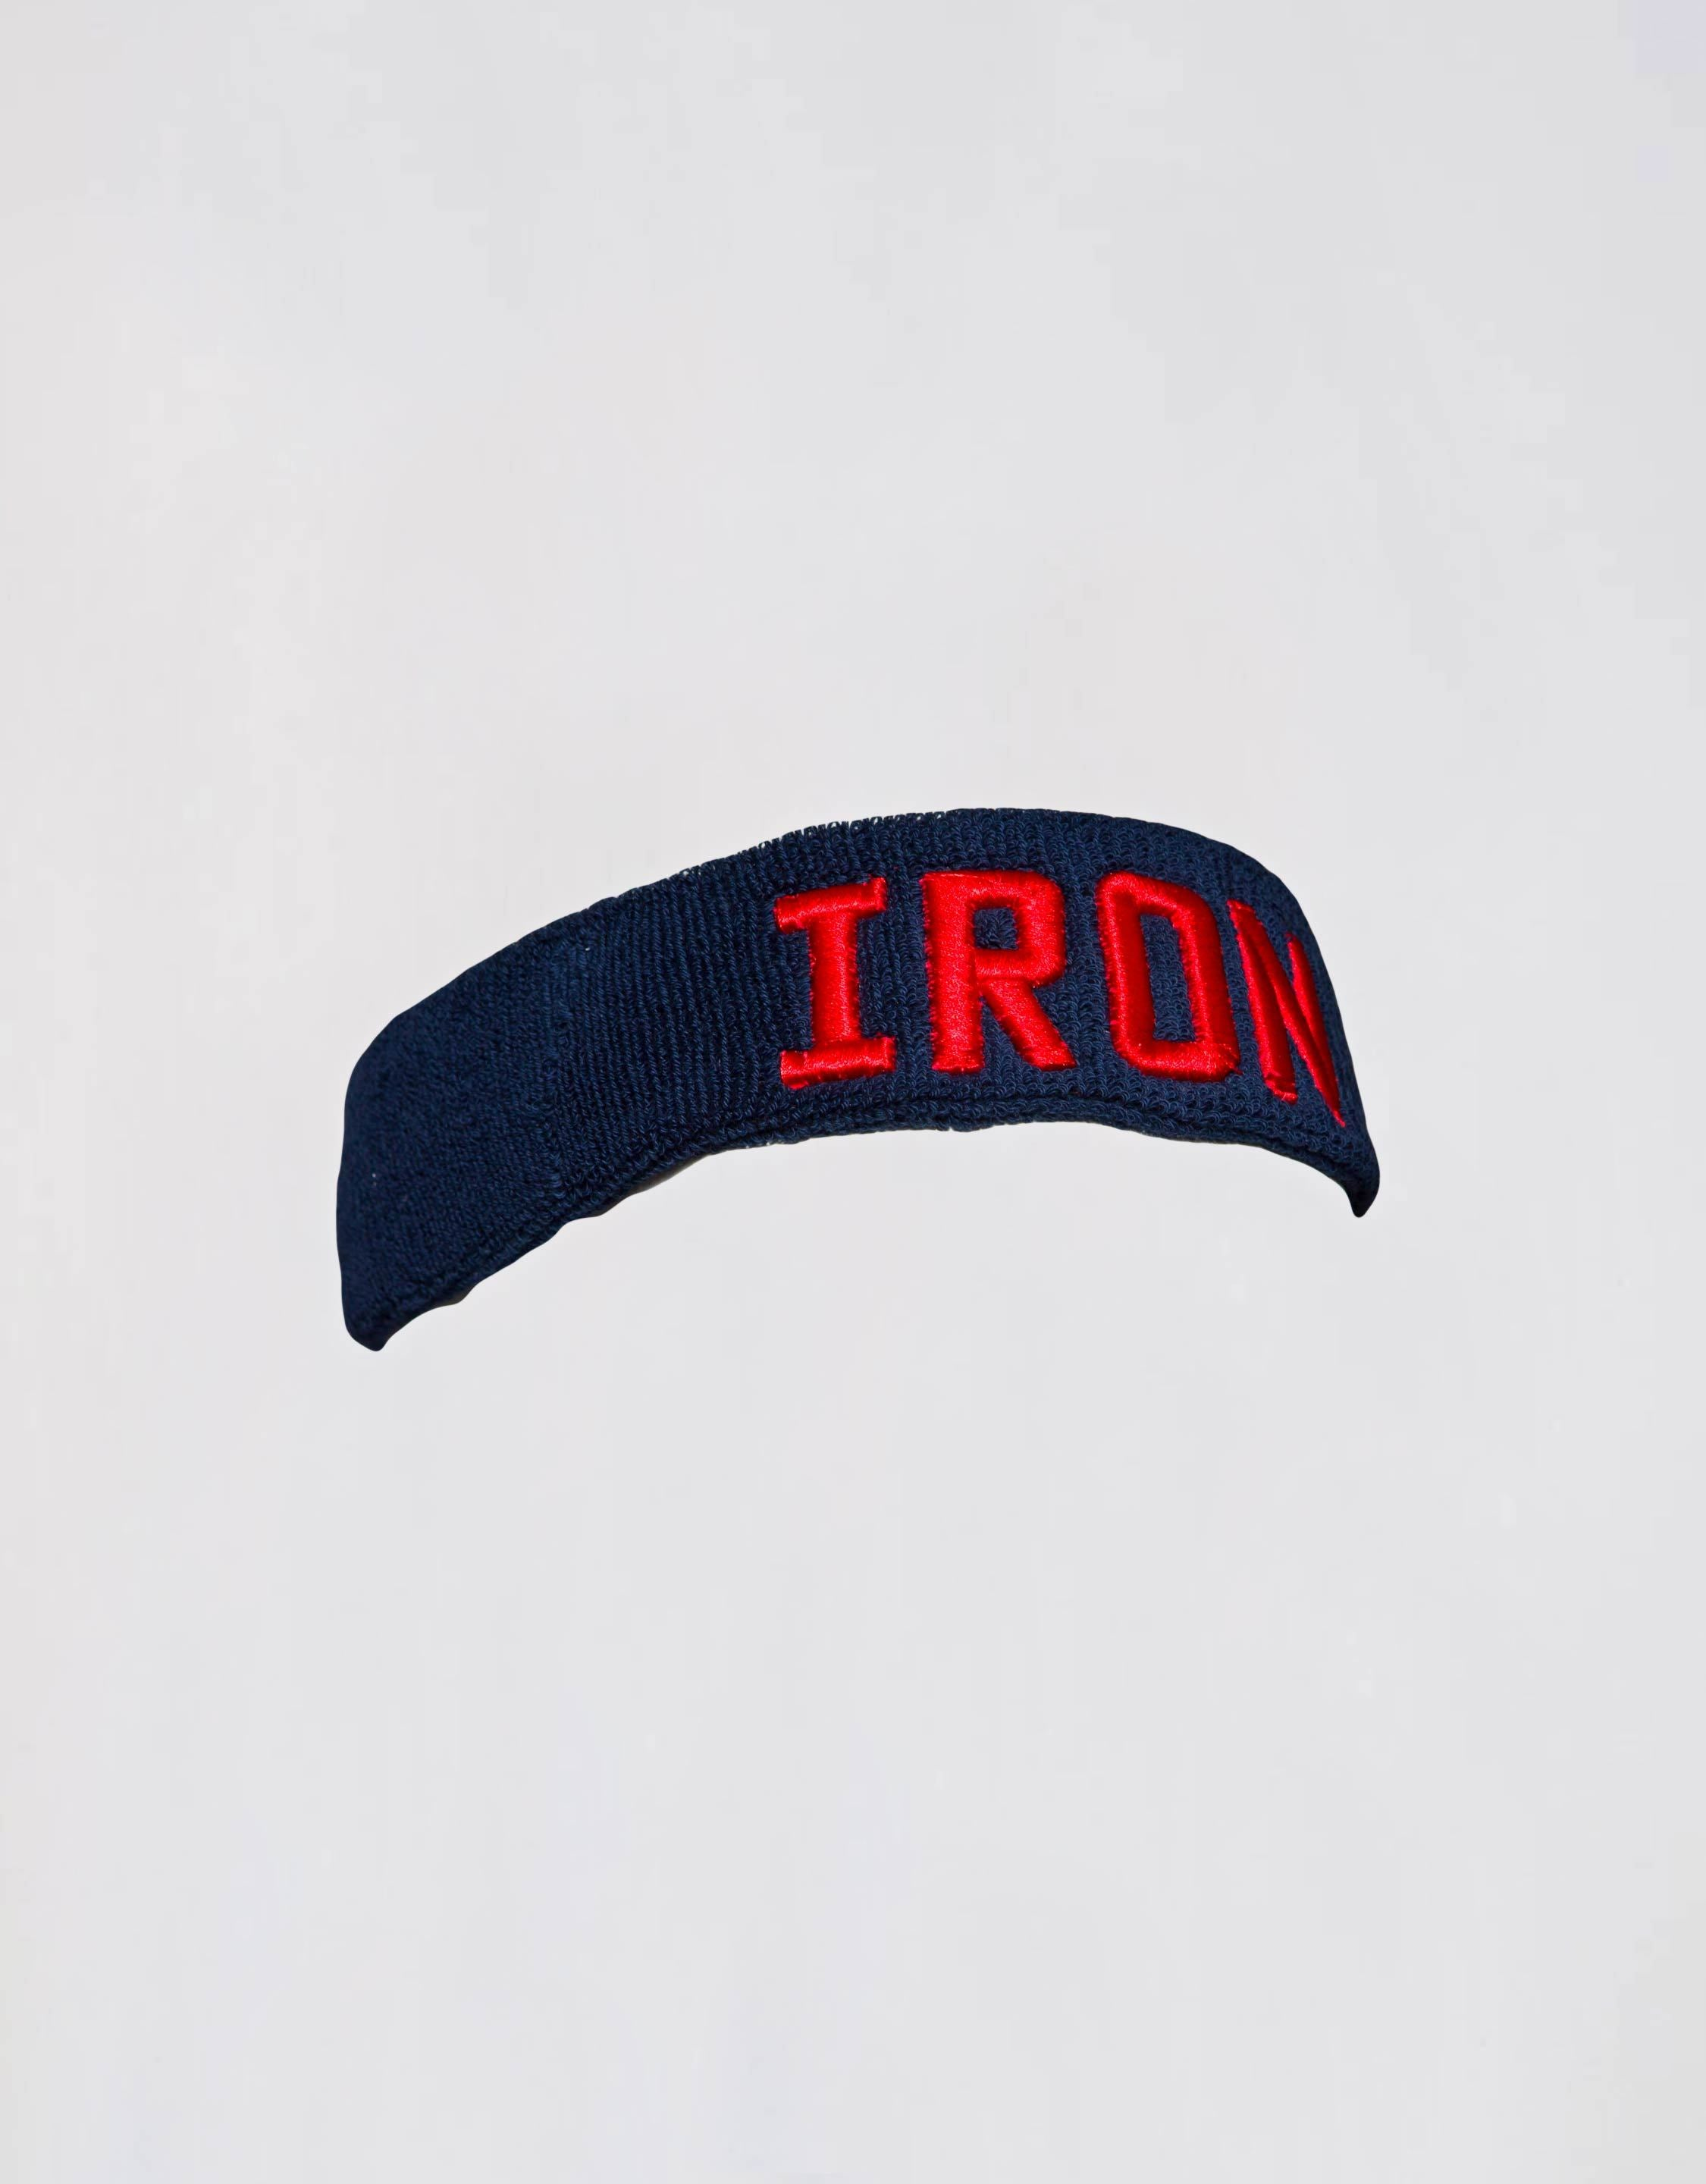 Iron Headband - Dark Blue/red - Hat